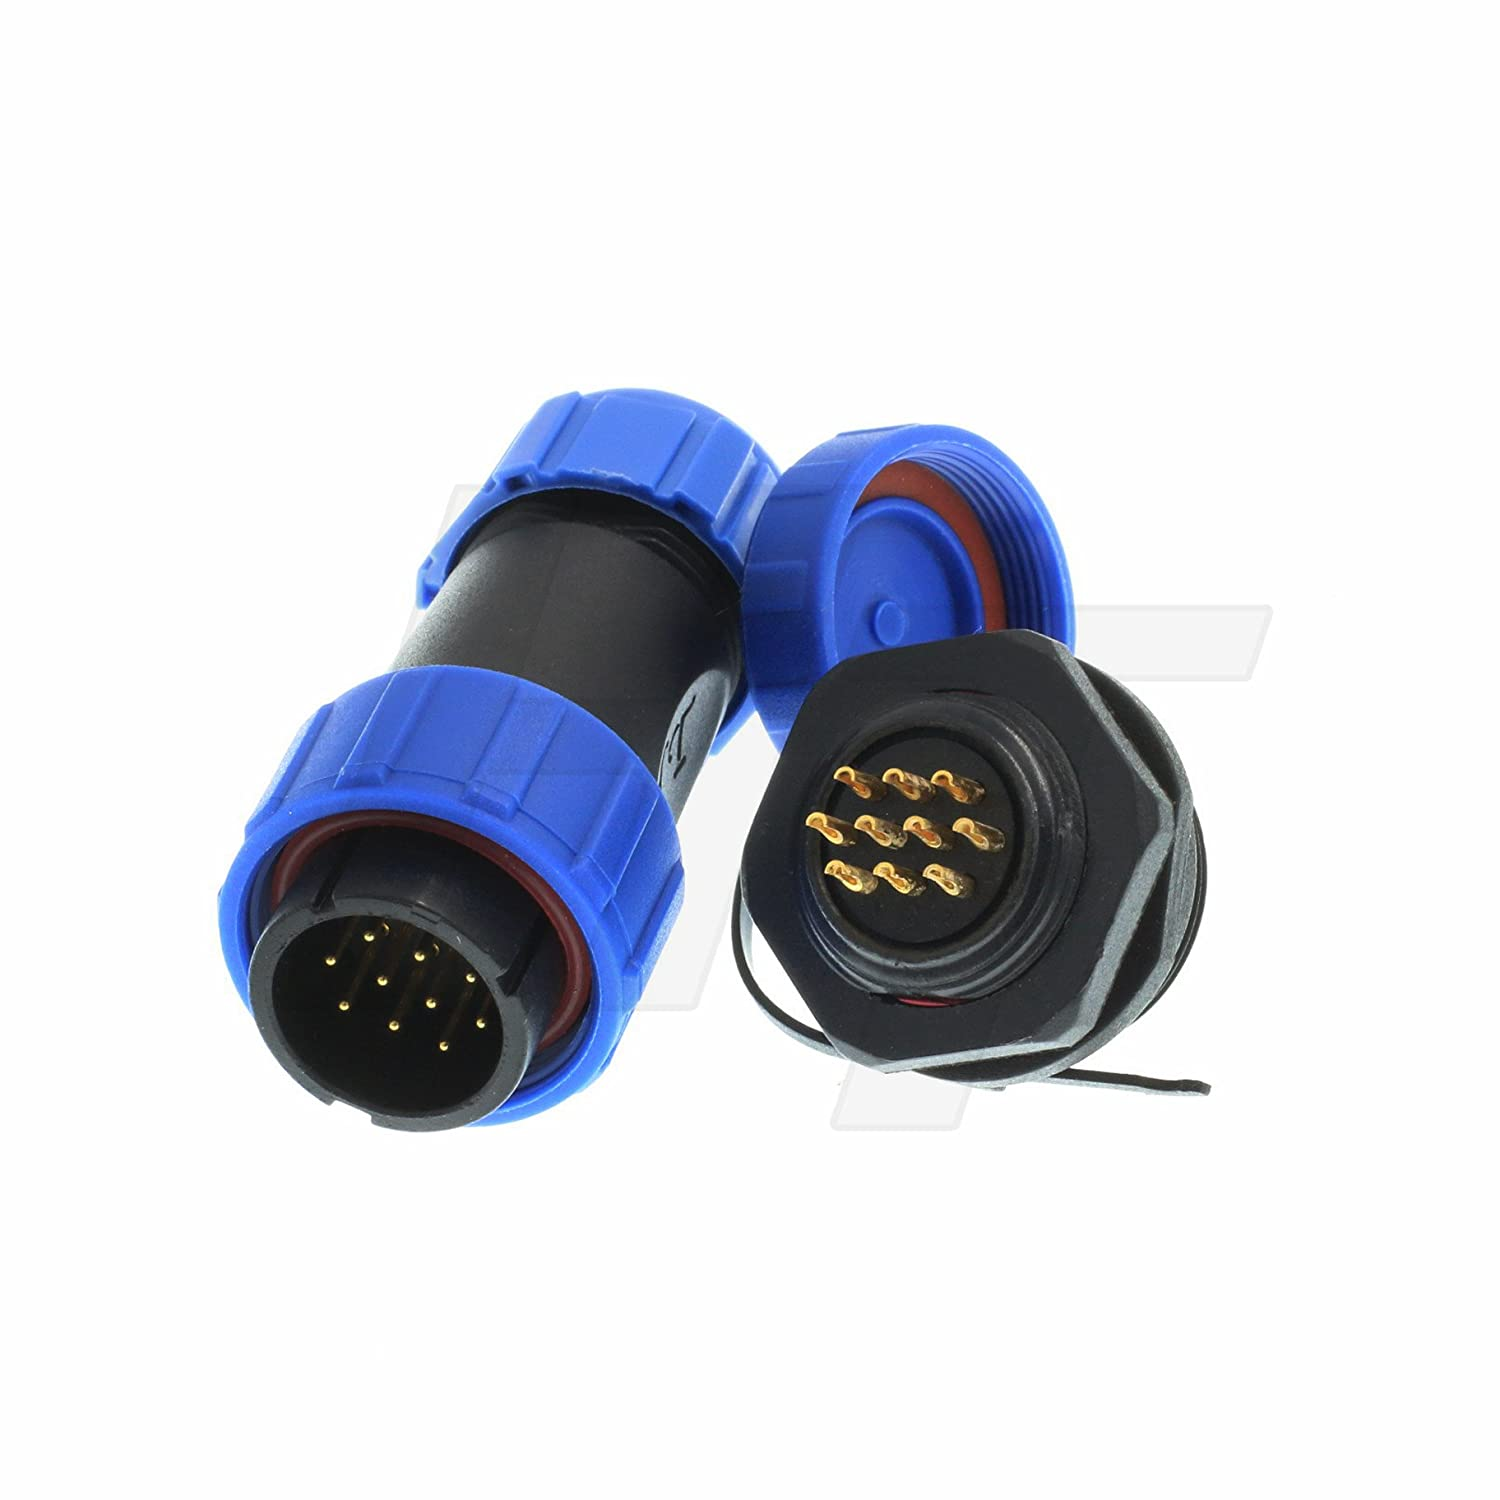 CN1021A24G43P7Y040 CN1021 Series Wall Mount Receptacle Circular Connector CN1021A24G43P7Y040 43 Contacts